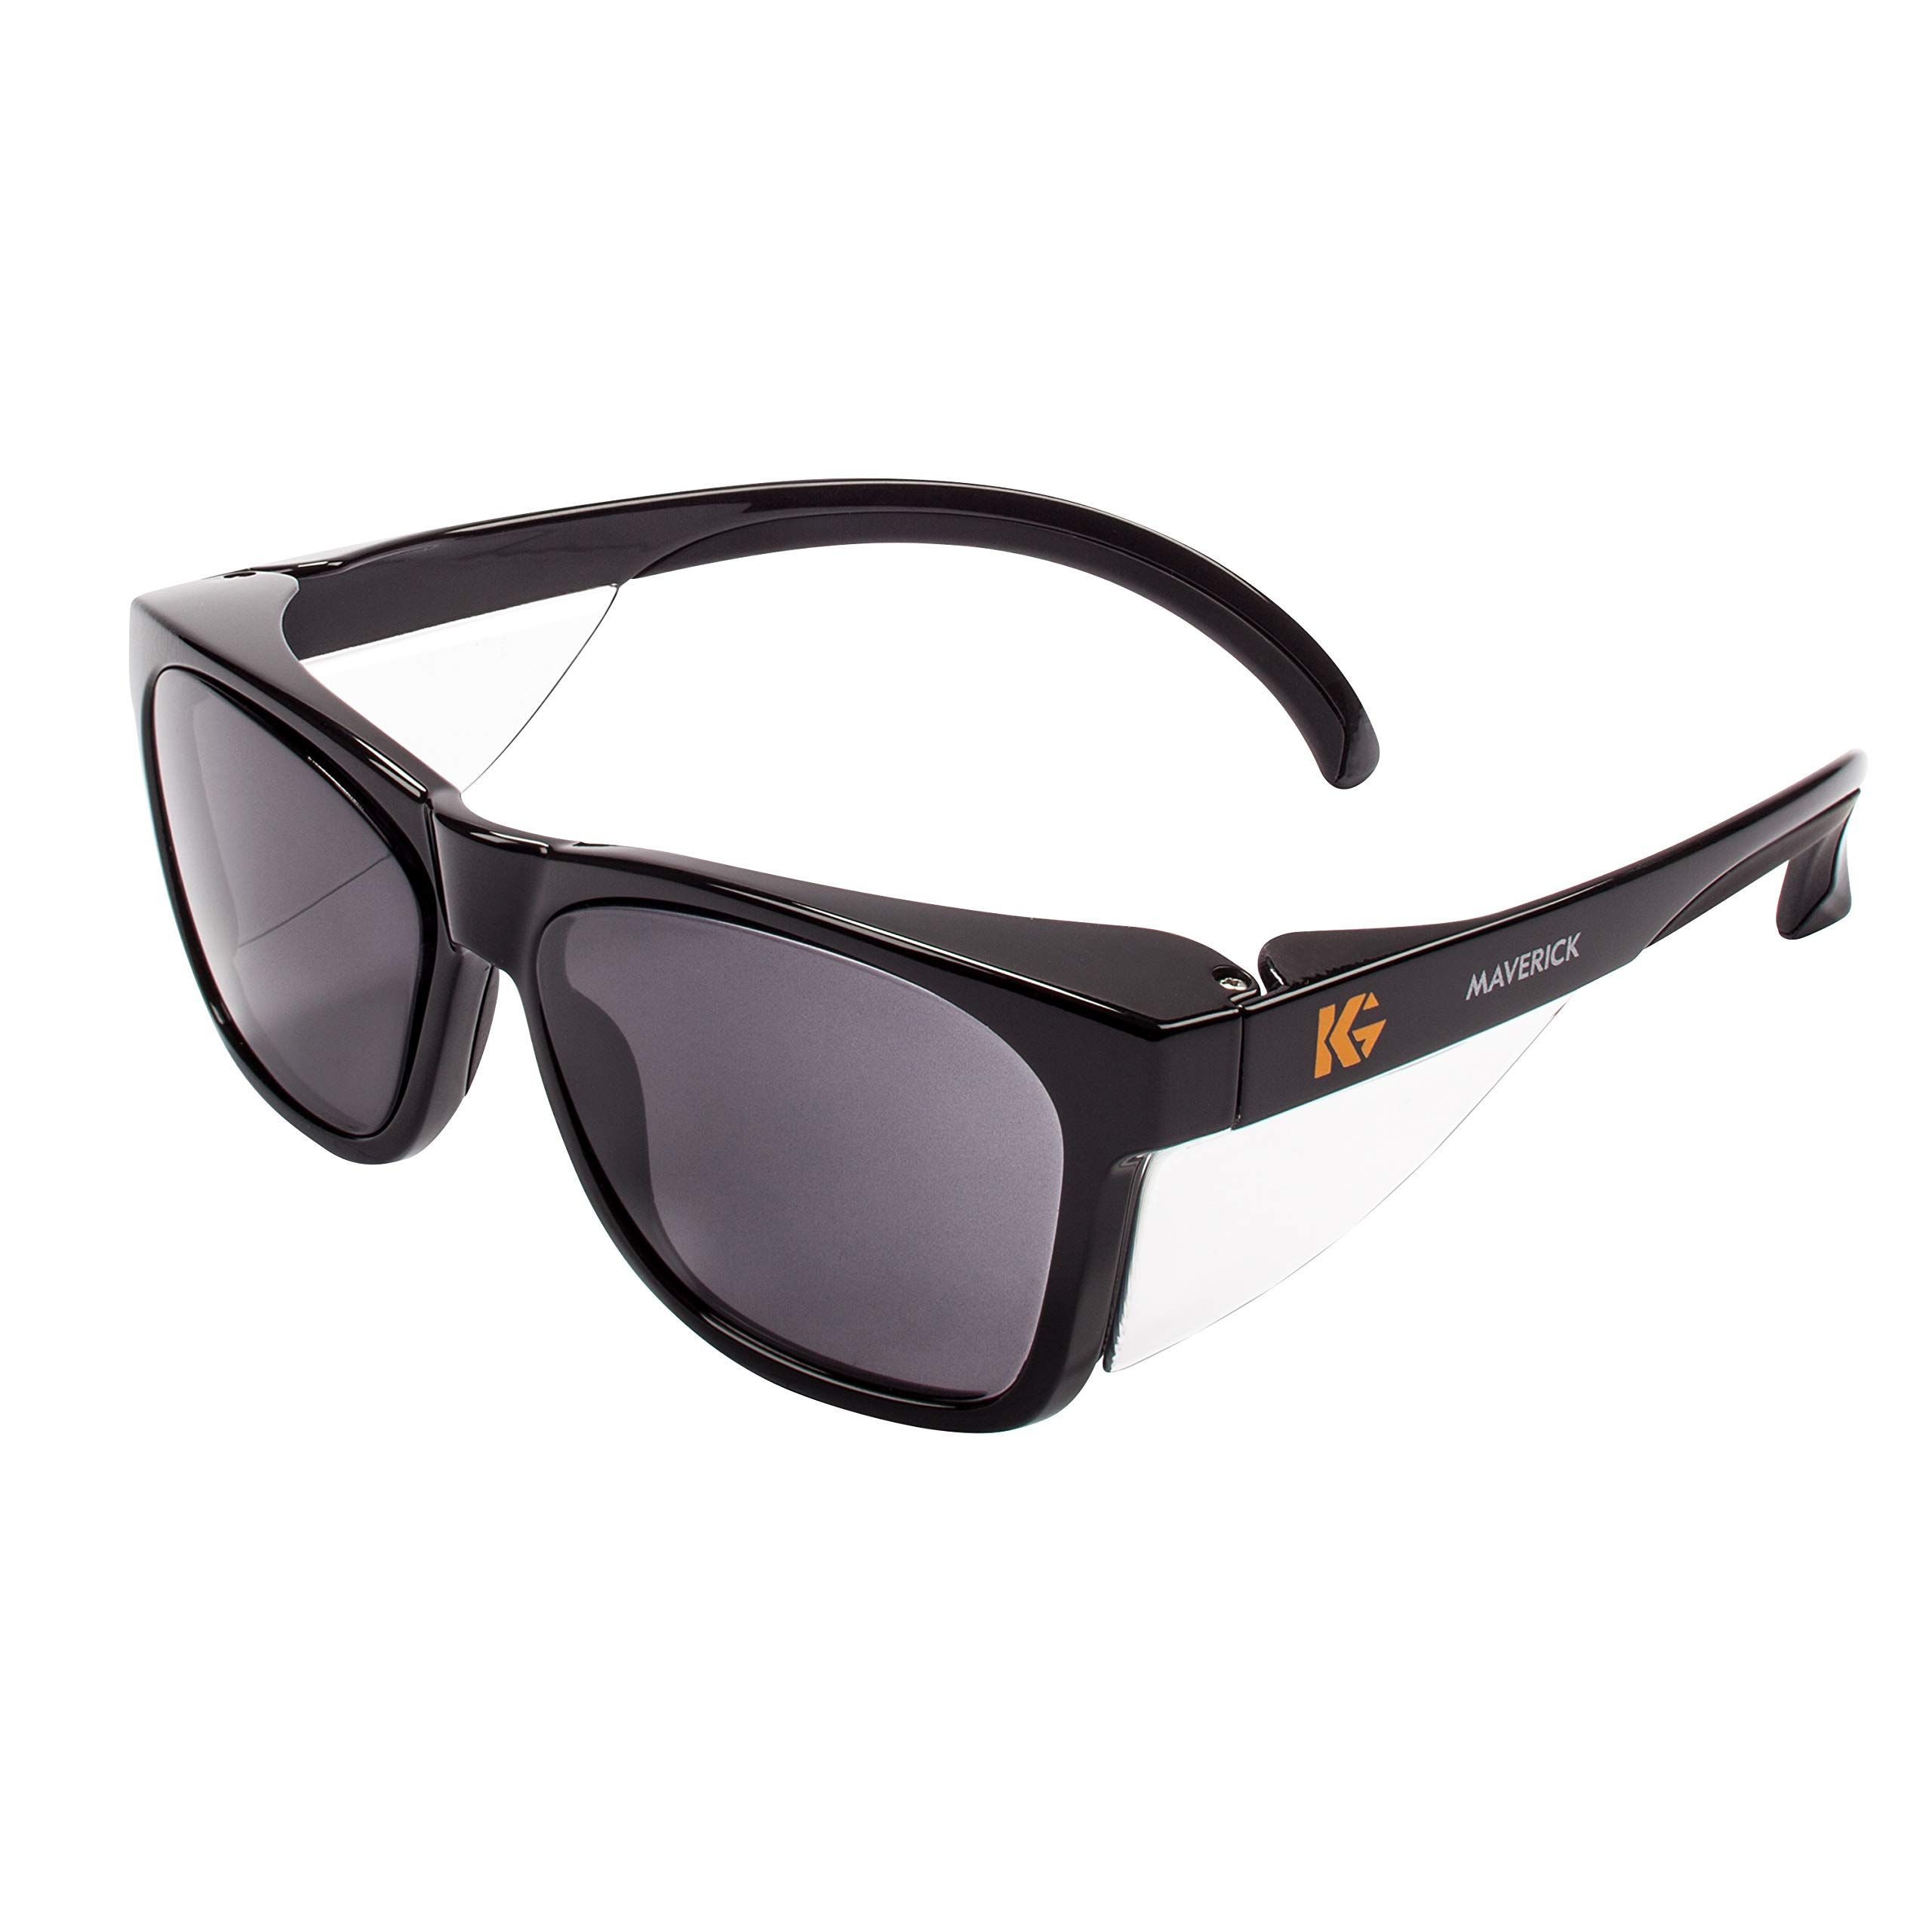 Kleenguard 49311 Maverick Safety Glasses, Black (Pack of 12) by KLEENGUARD